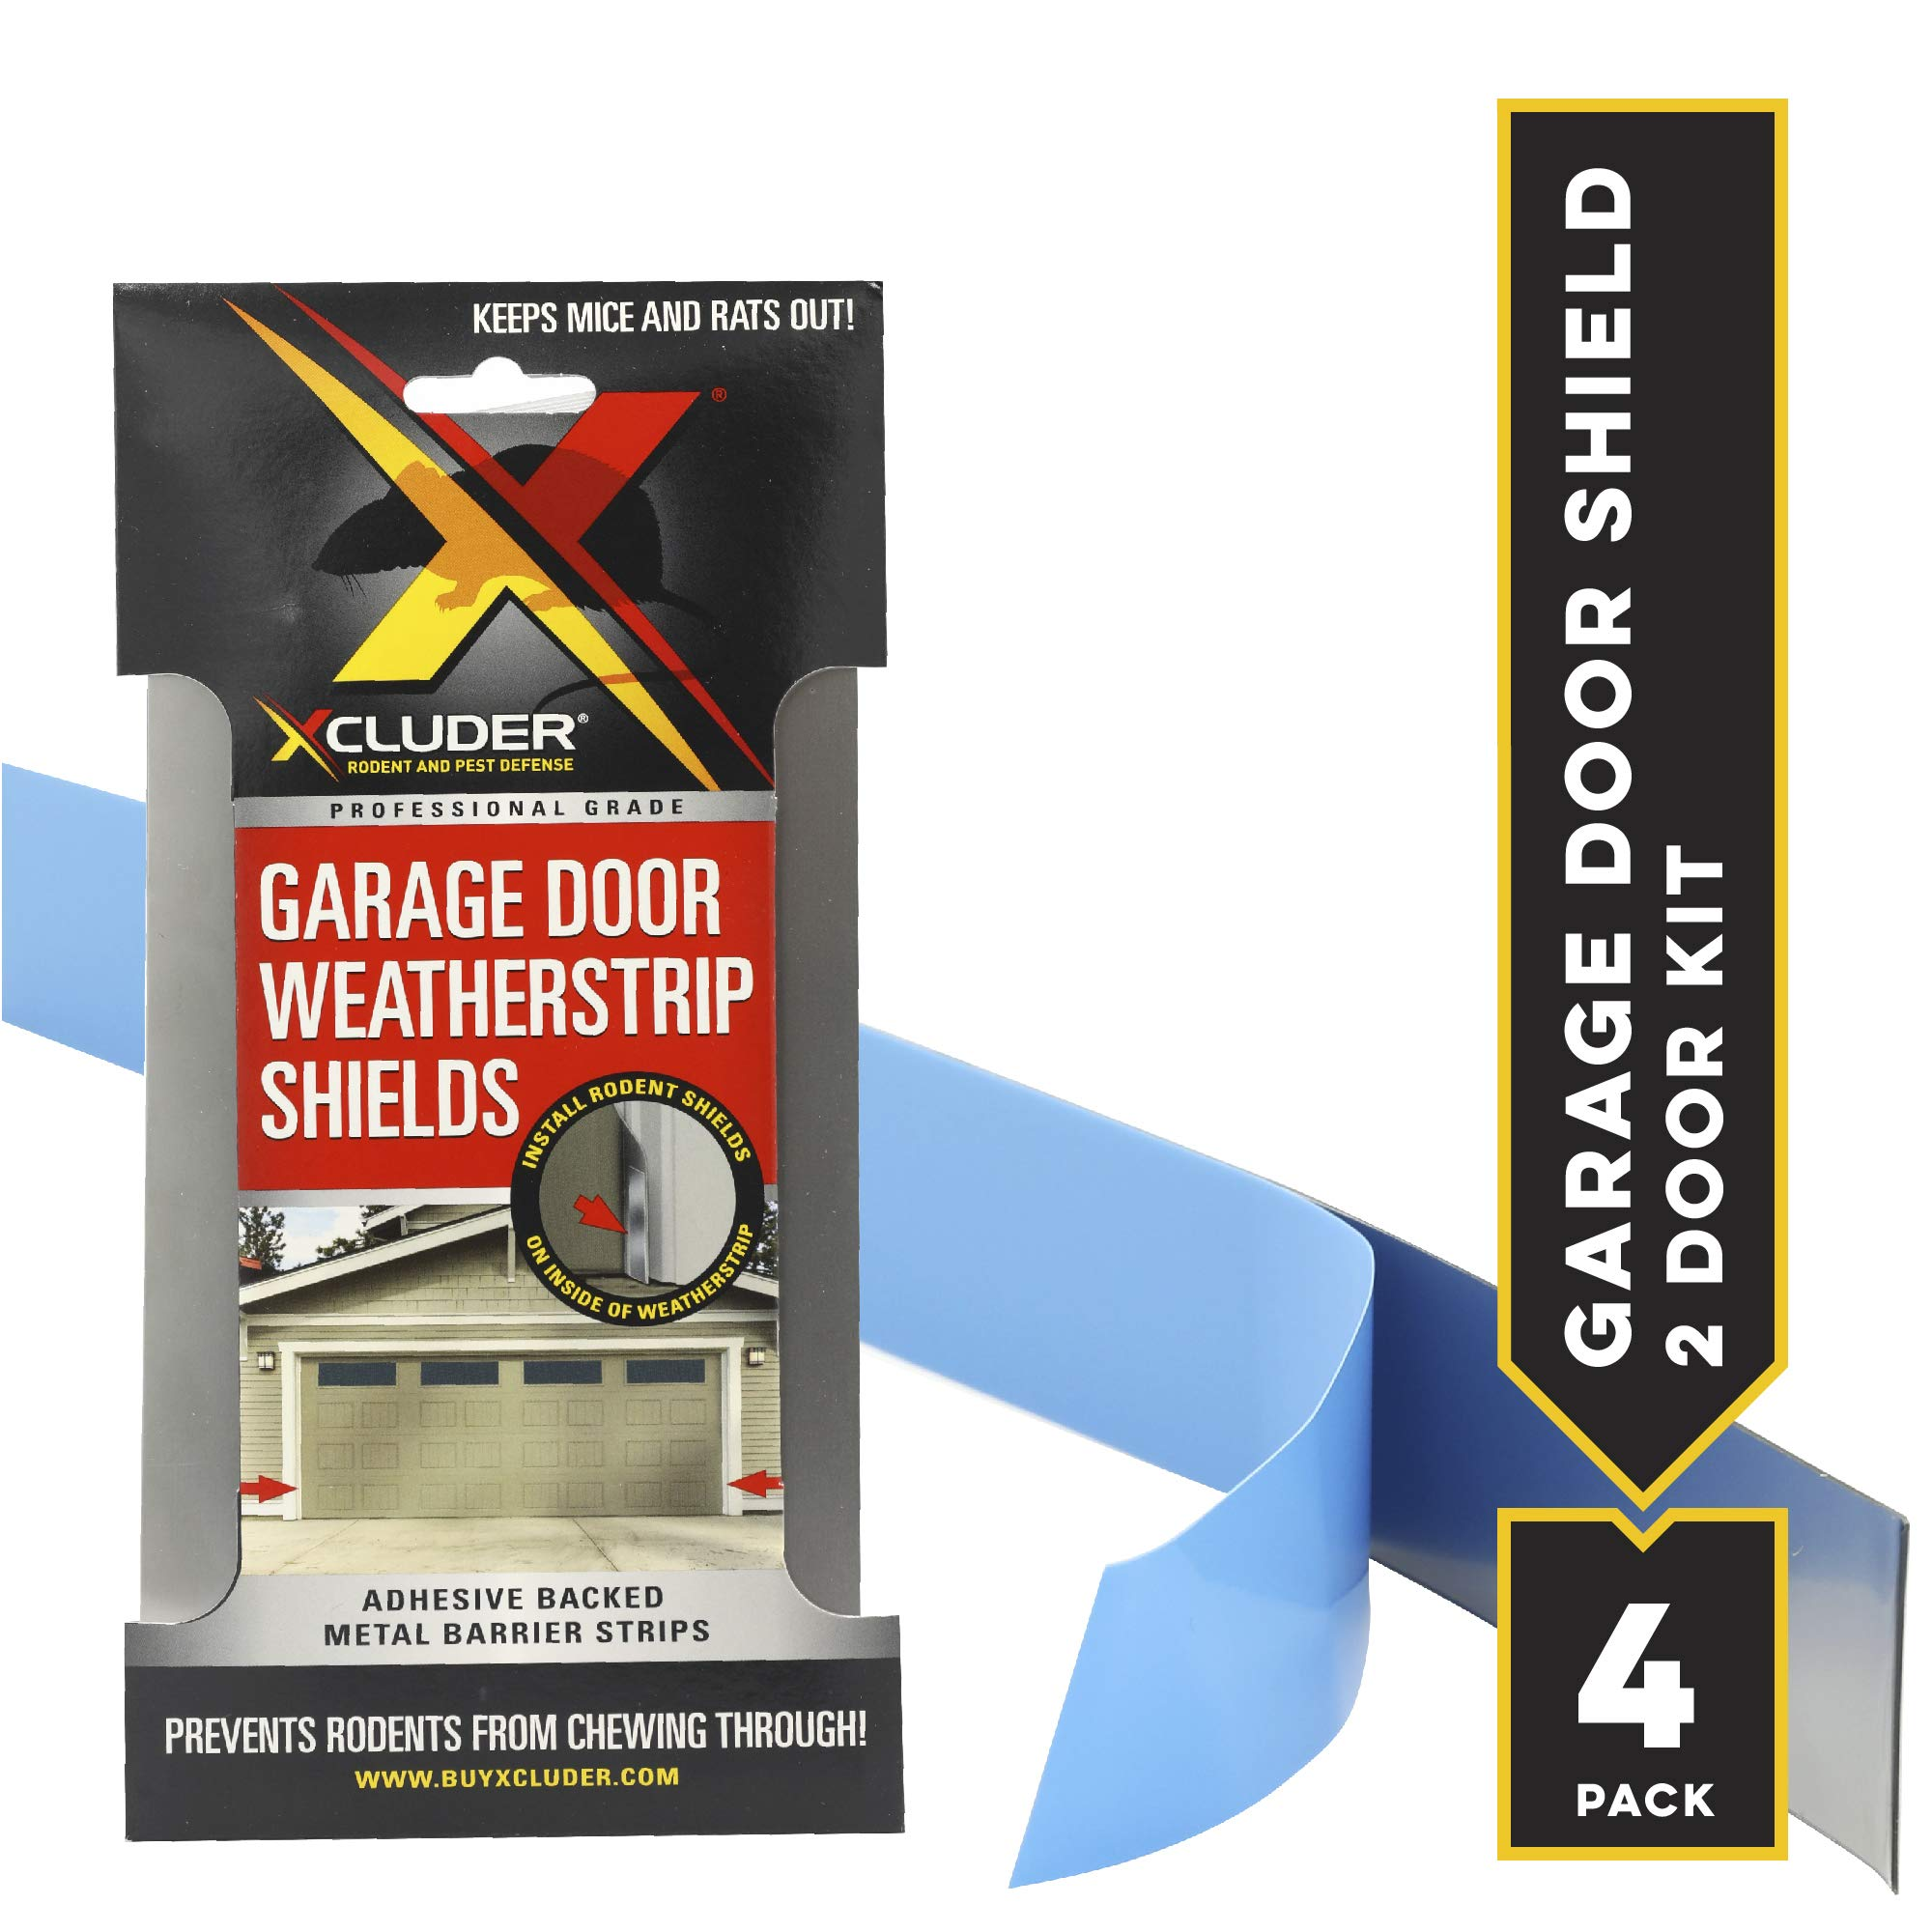 XCLUDER 162942 Garage Door Rodent Shield, Stainless Steel, 2 Door Kit (Pack of 4) by Xcluder